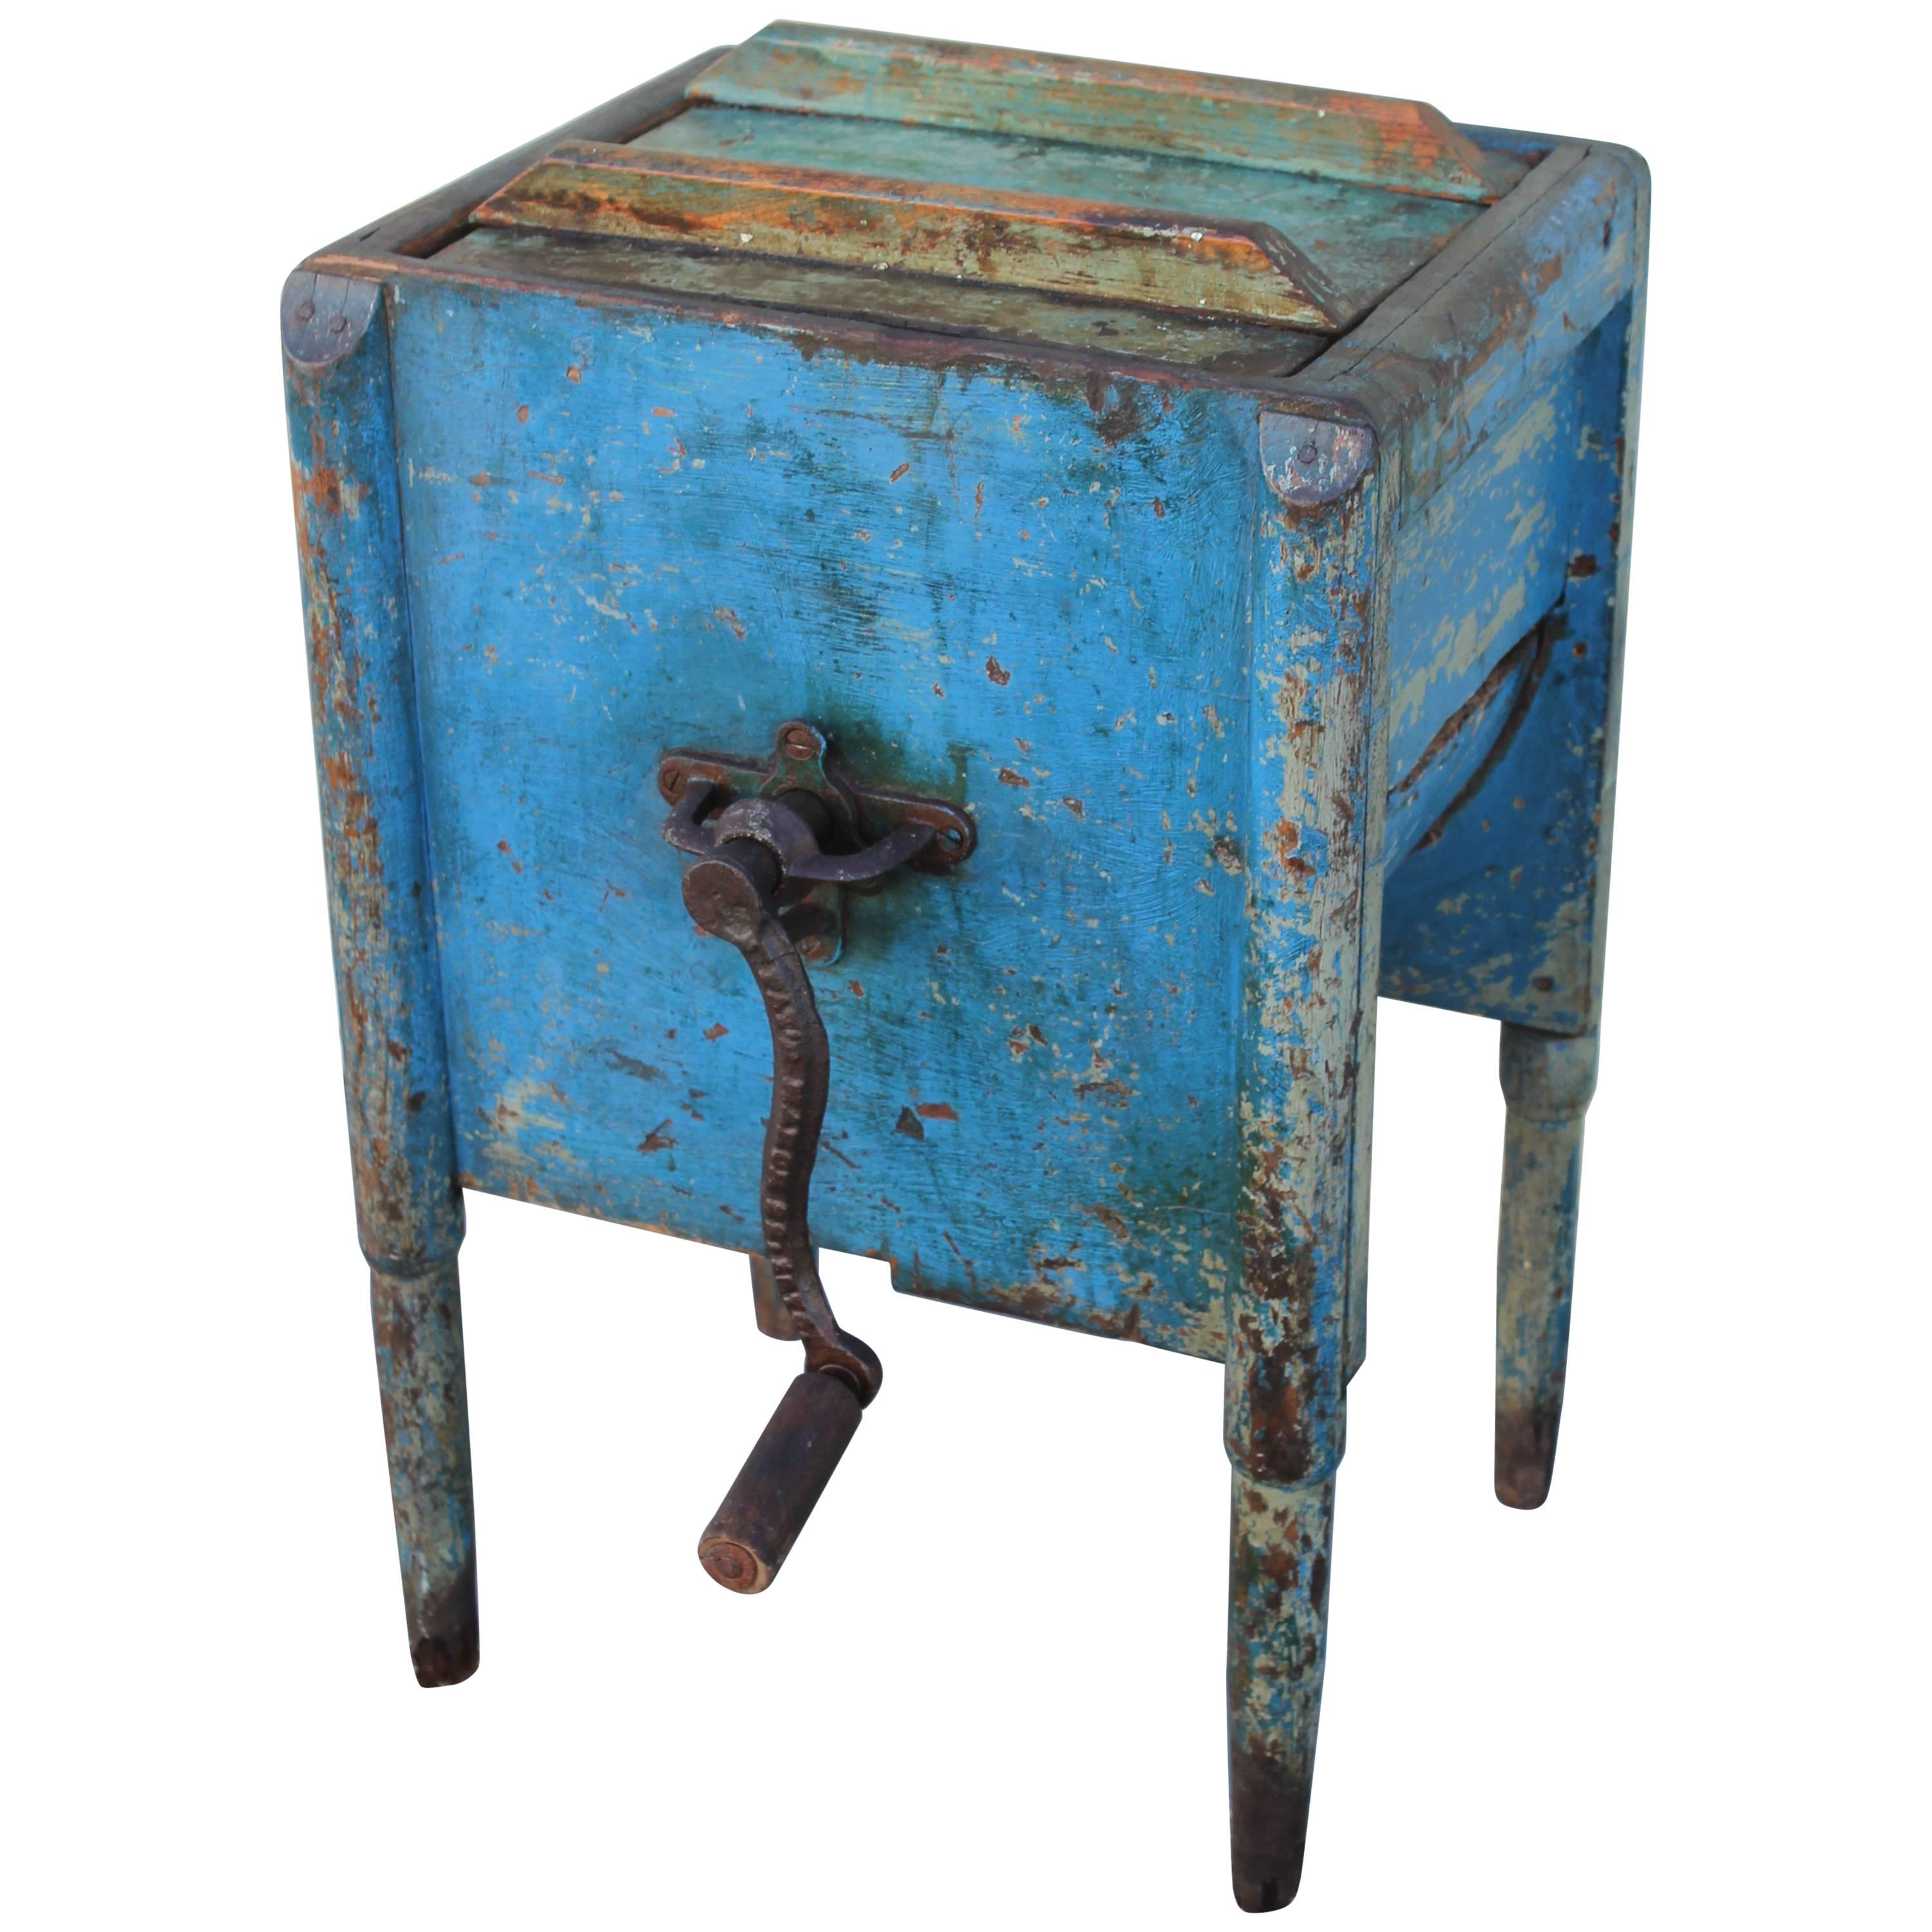 19th Century Original Blue Painted Butter Churn from New England